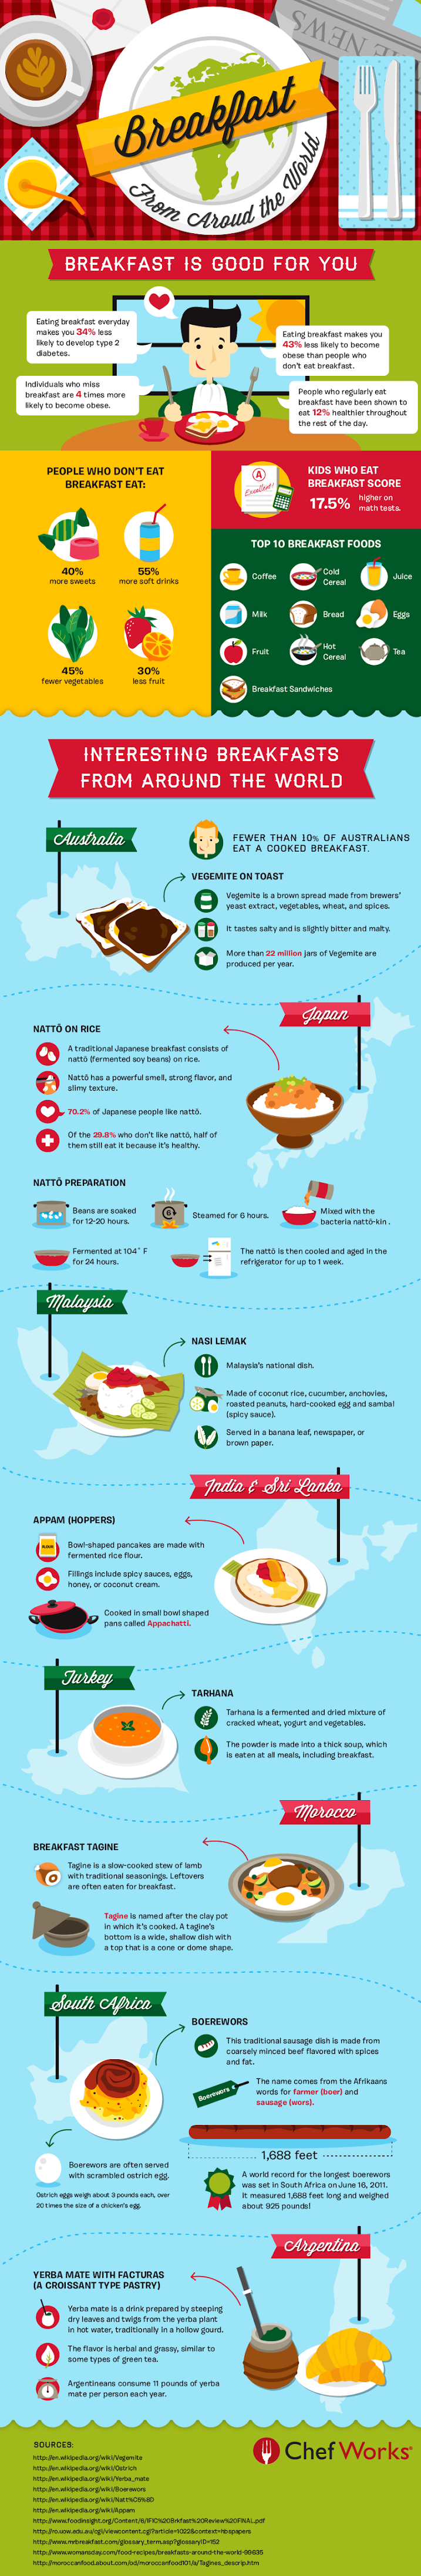 Breakfast From Around The World #infographic